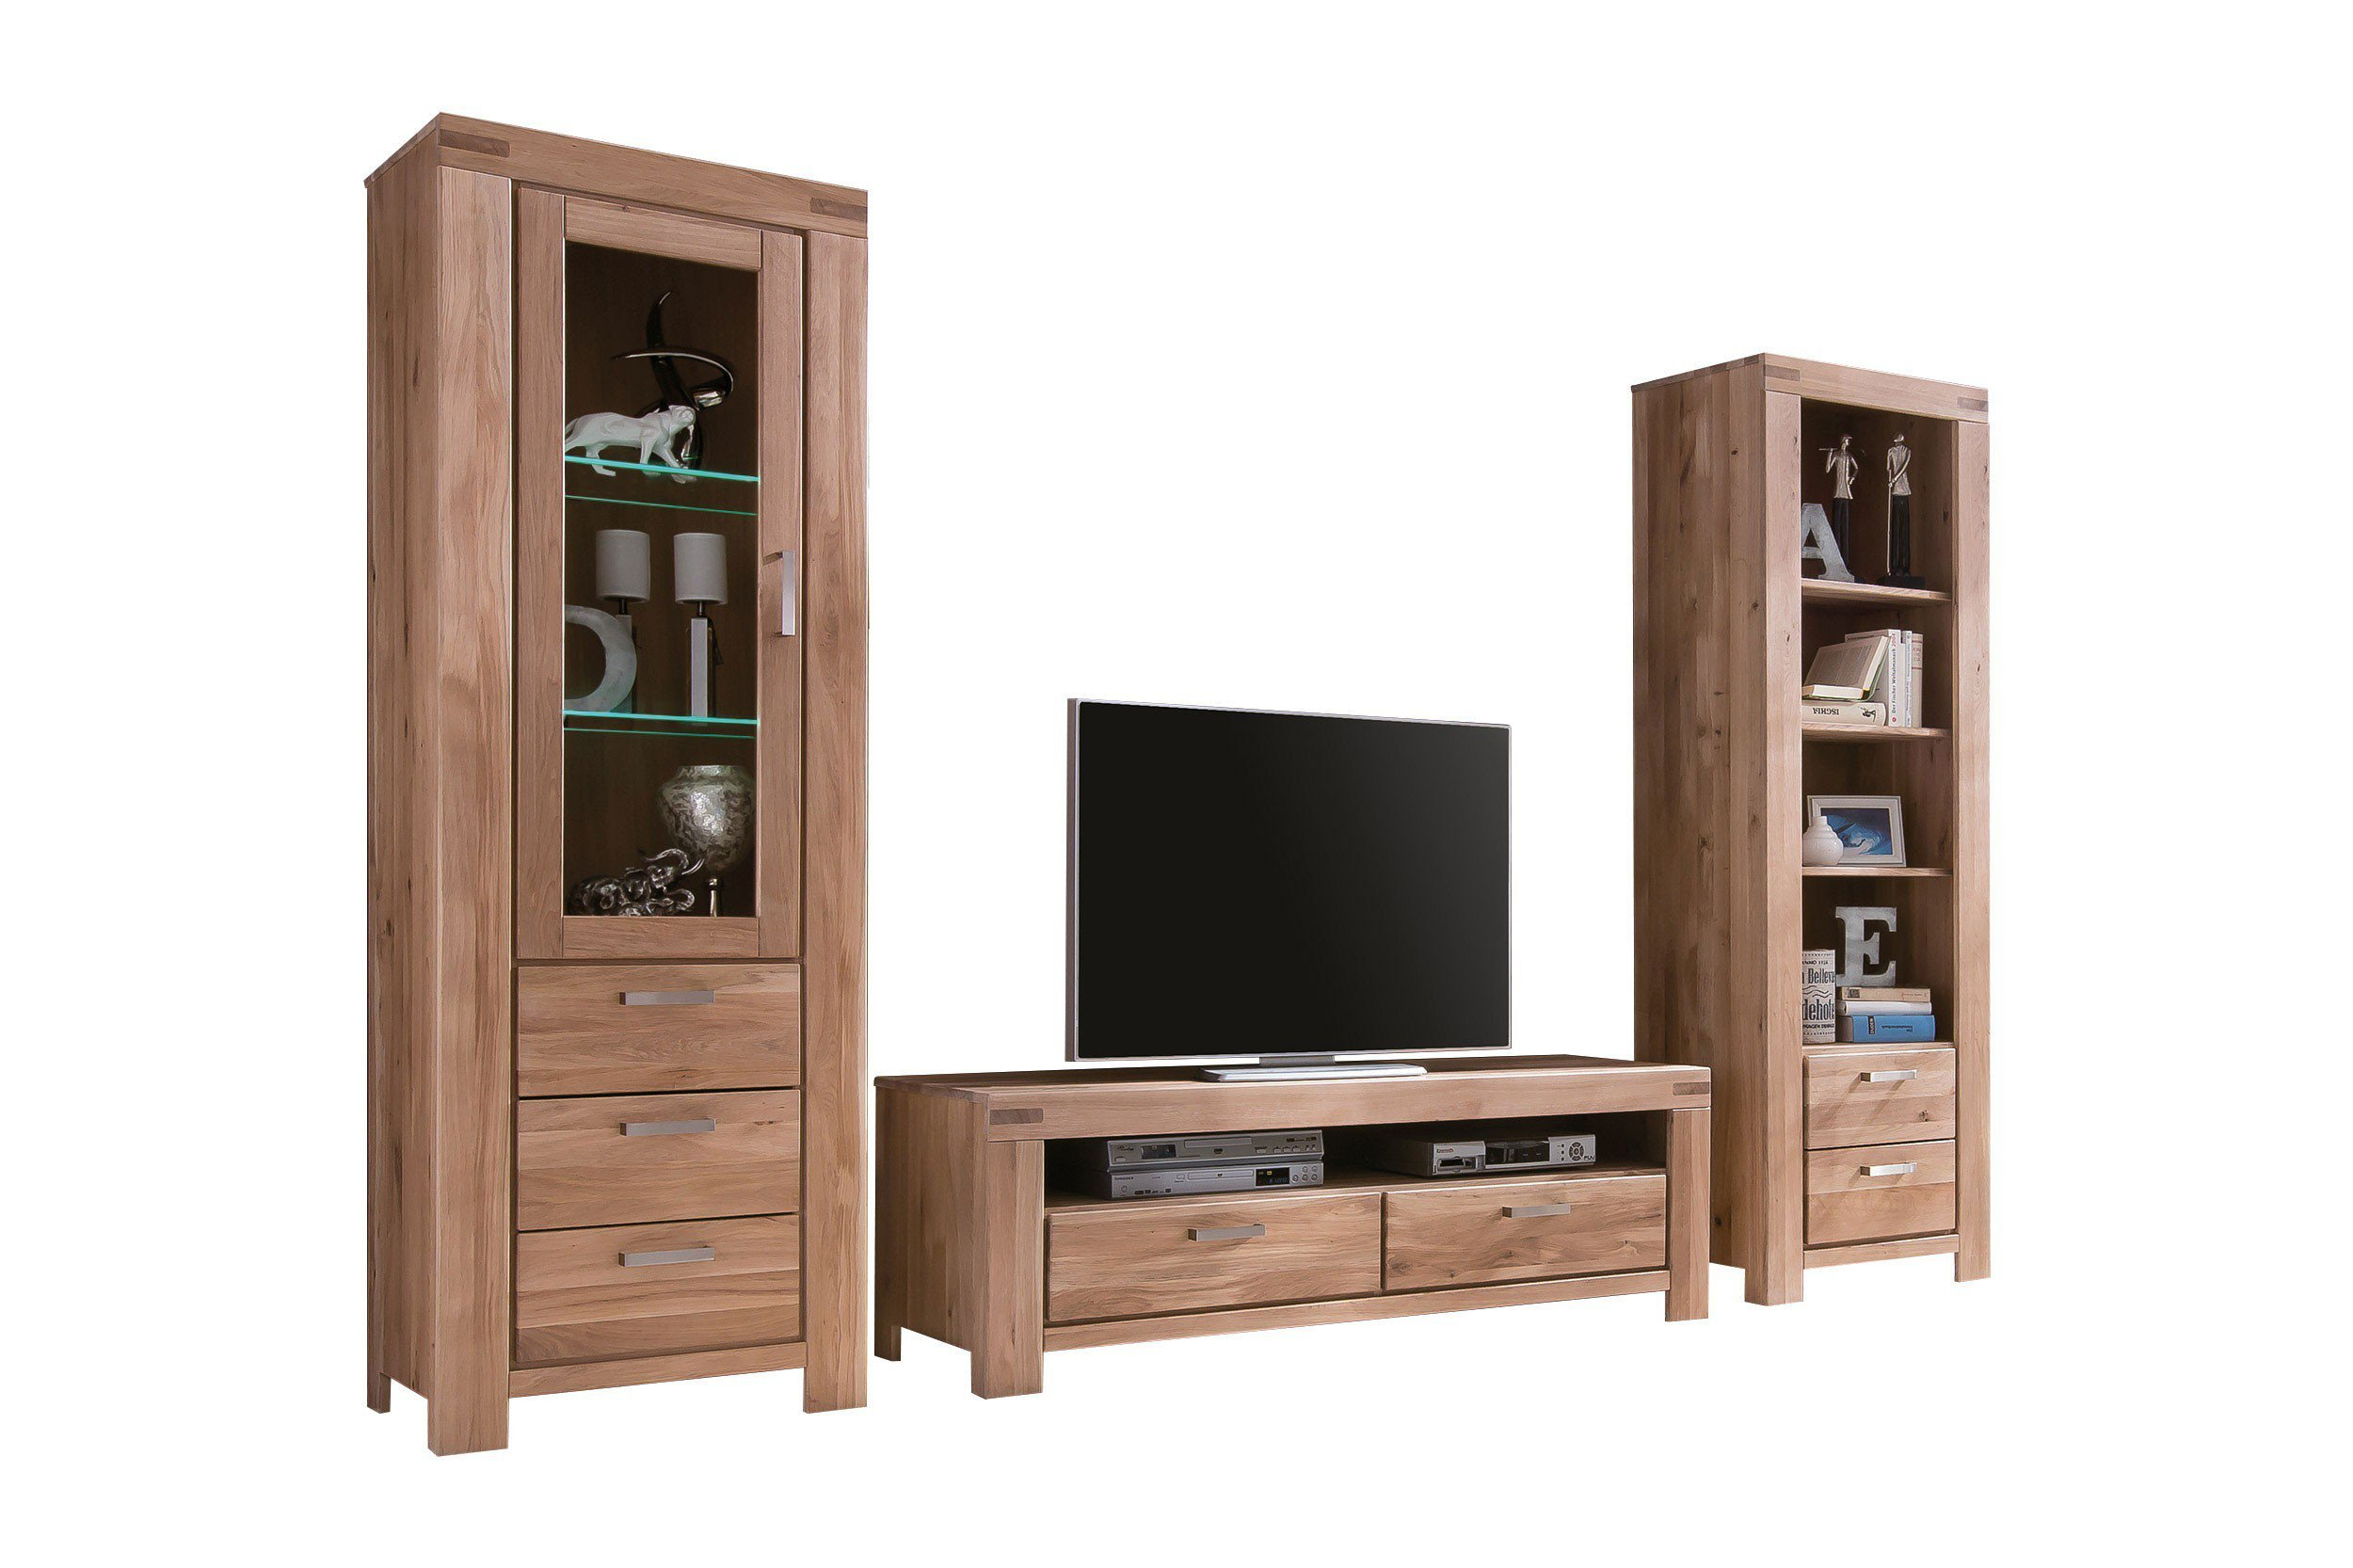 elfo m bel wohnwand kira wildeiche bianco m bel letz ihr online shop. Black Bedroom Furniture Sets. Home Design Ideas